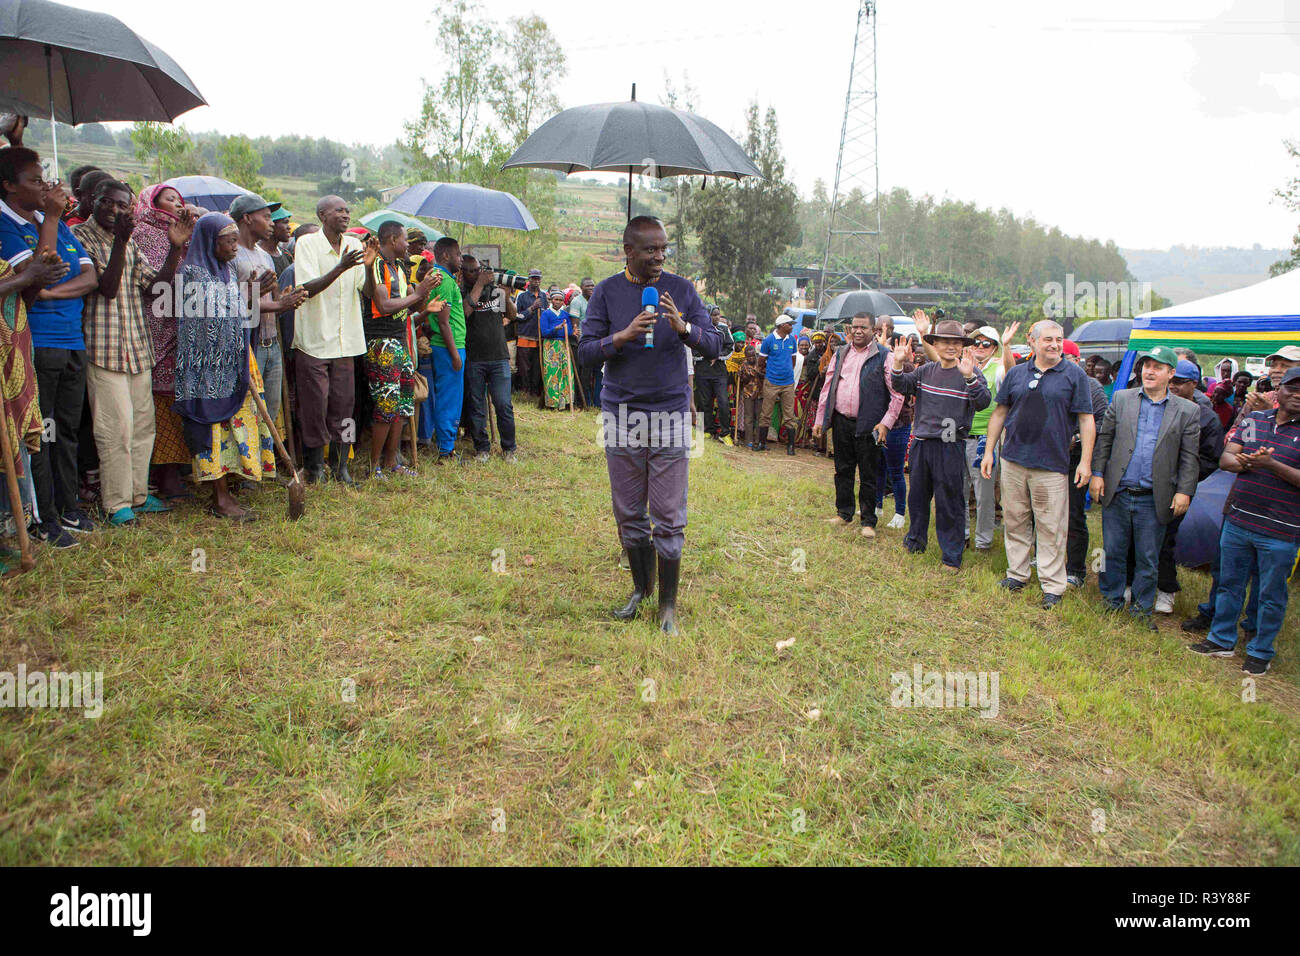 """(181124) -- KAMONYI (RWANDA), Nov. 24, 2018 (Xinhua) -- Rwandan Foreign Minister Richard Sezibera (C) speaks during monthly community work, Umuganda, in Kamonyi district, central Rwanda, on Nov. 24, 2018. Diplomatic missions in Rwanda and Rwandan Ministry of Foreign Affairs and International Cooperation on Saturday organized a diplomatic Umuganda in Kamonyi. Taking root from Rwandan culture of self-help and cooperation, Umuganda, held on the last Saturday of the month, can be translated as """"coming together in common purpose to achieve an outcome,"""" according to Rwanda Governance Board. (Xinhua/ Stock Photo"""